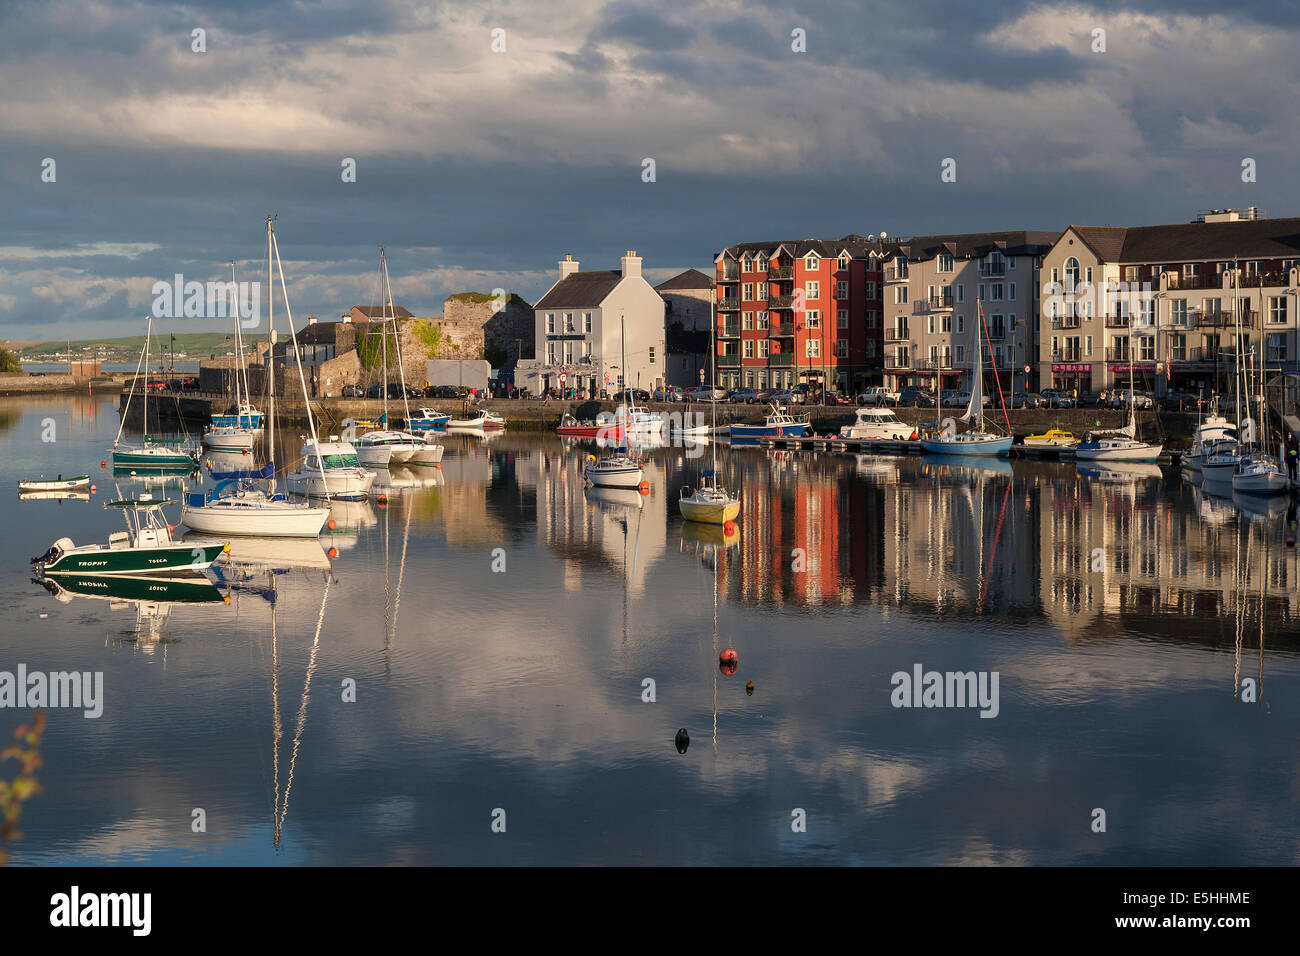 Ireland, County Waterford, Dungarven harbour - Stock Image